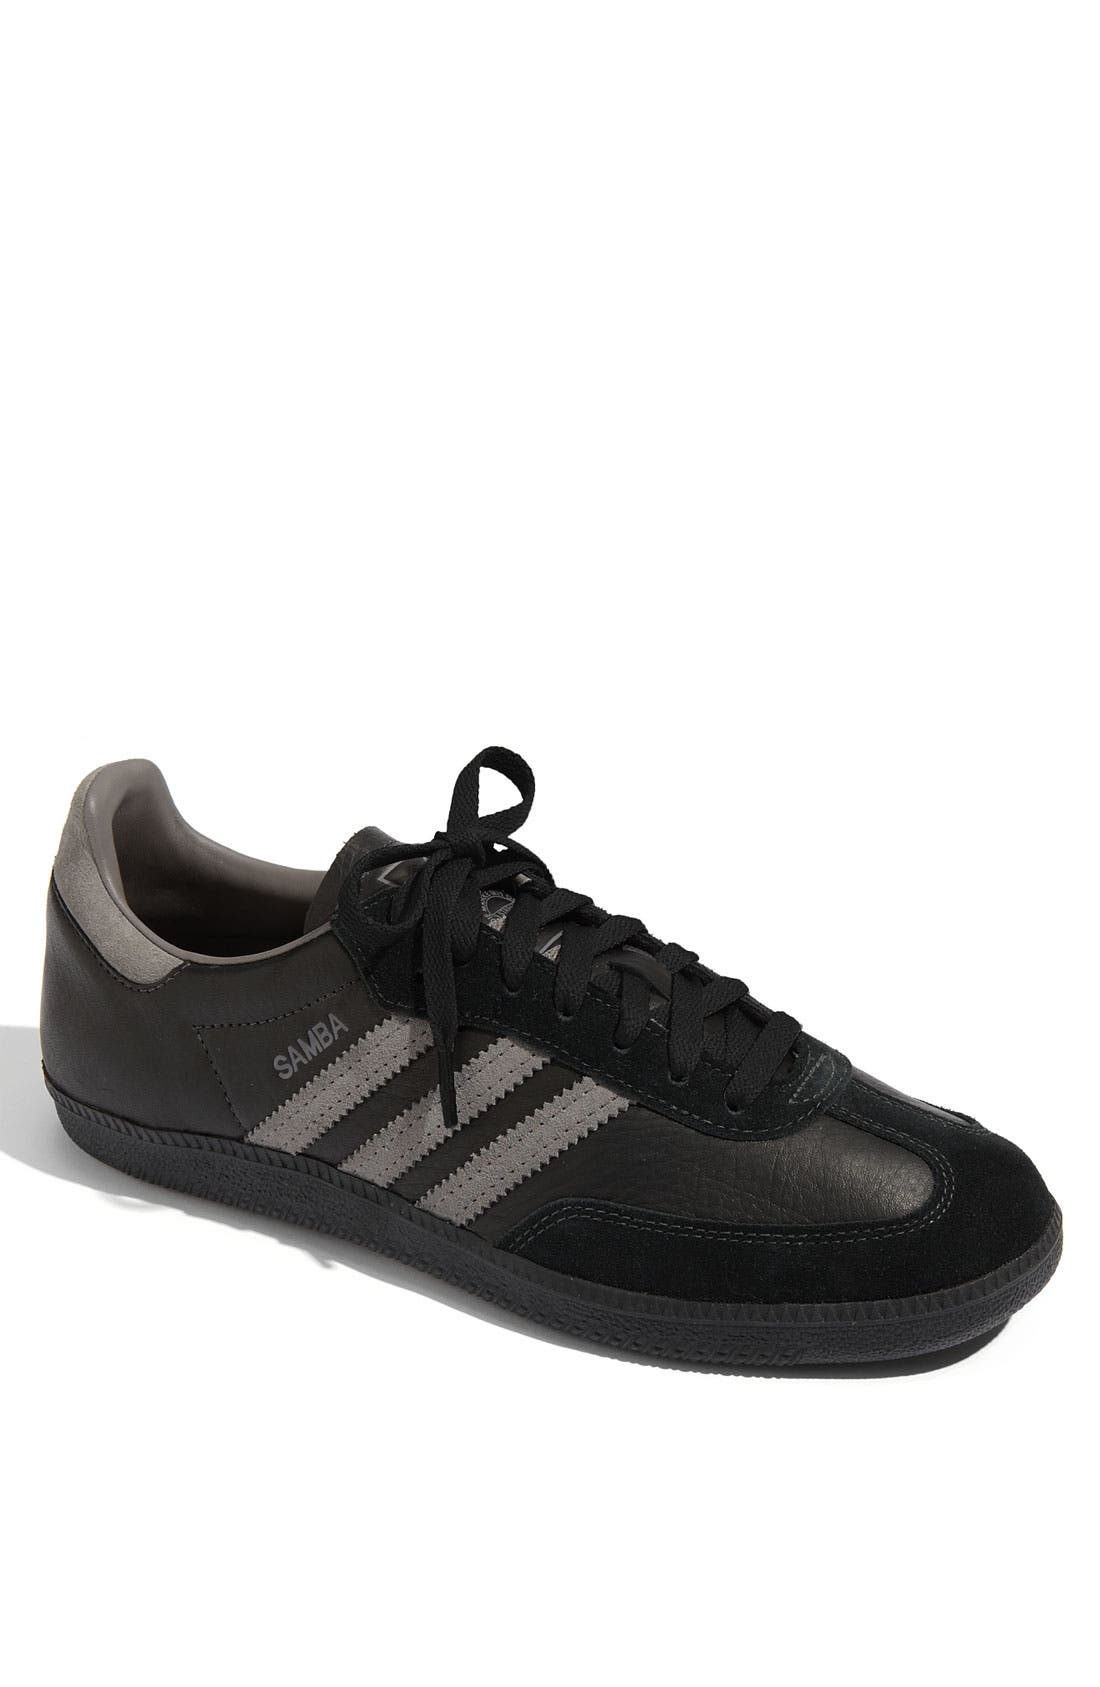 Alternate Image 1 Selected - adidas 'Samba' Sneaker